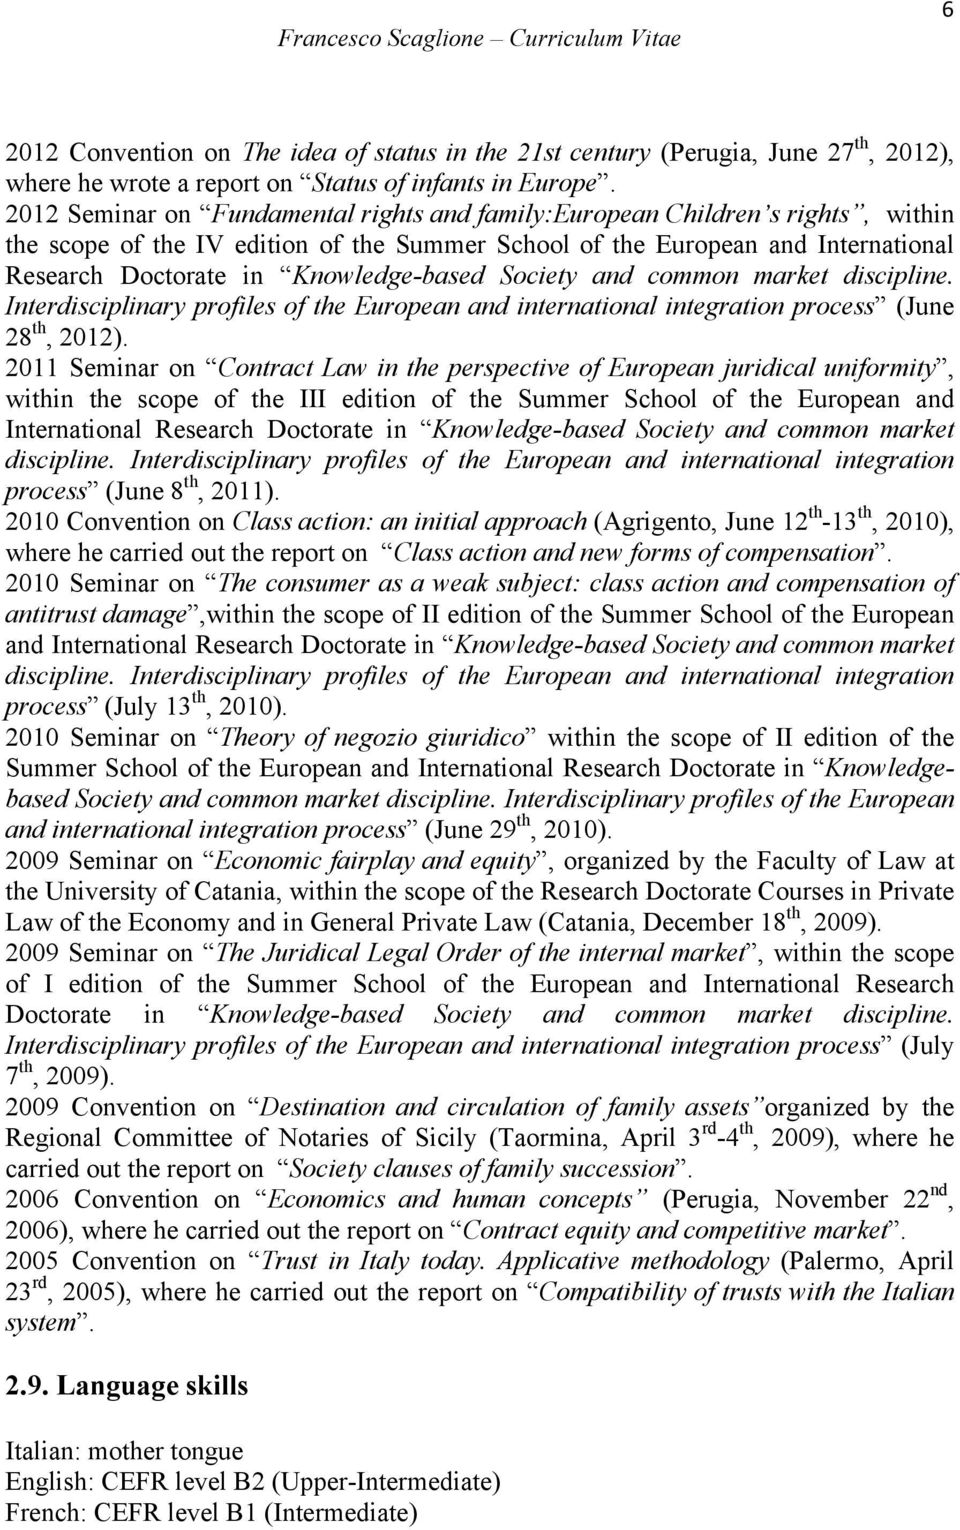 Knowledge-based Society and common market discipline. Interdisciplinary profiles of the European and international integration process (June 28 th, 2012).